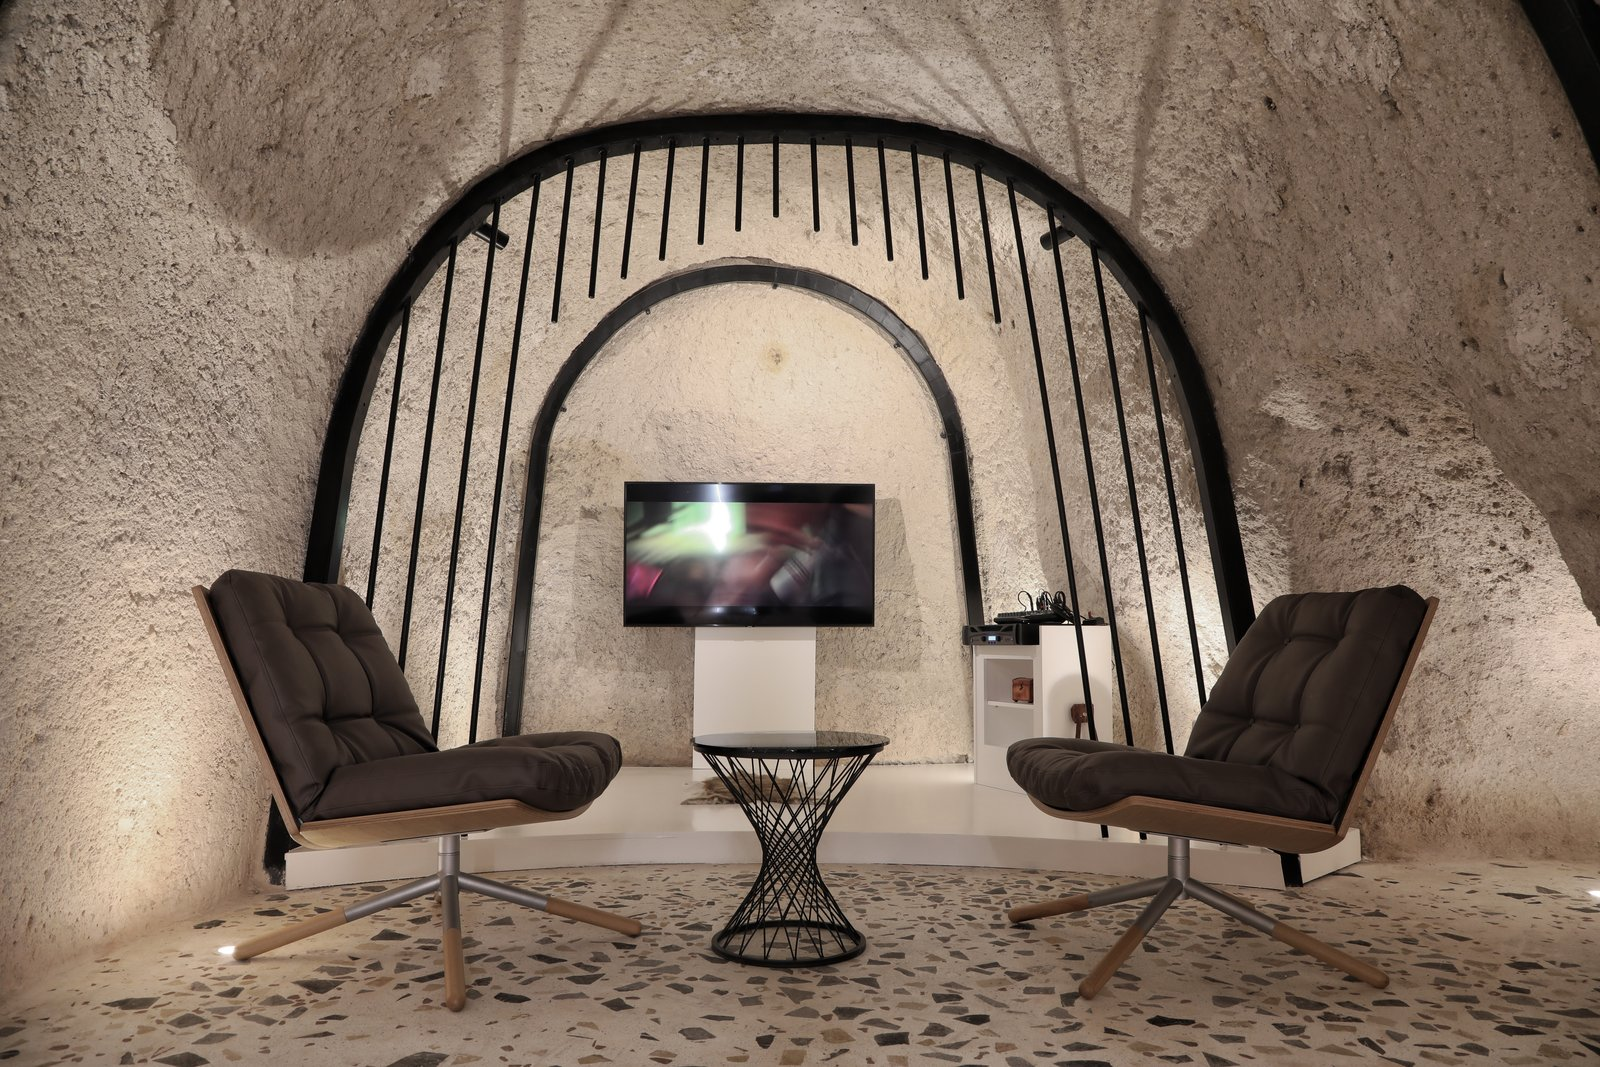 Living Room, Chair, Floor Lighting, End Tables, and Terrazzo Floor  Photo 6 of 13 in A Primal Space Gets a Swanky, Modern Twist in This Turkish Cave Loft